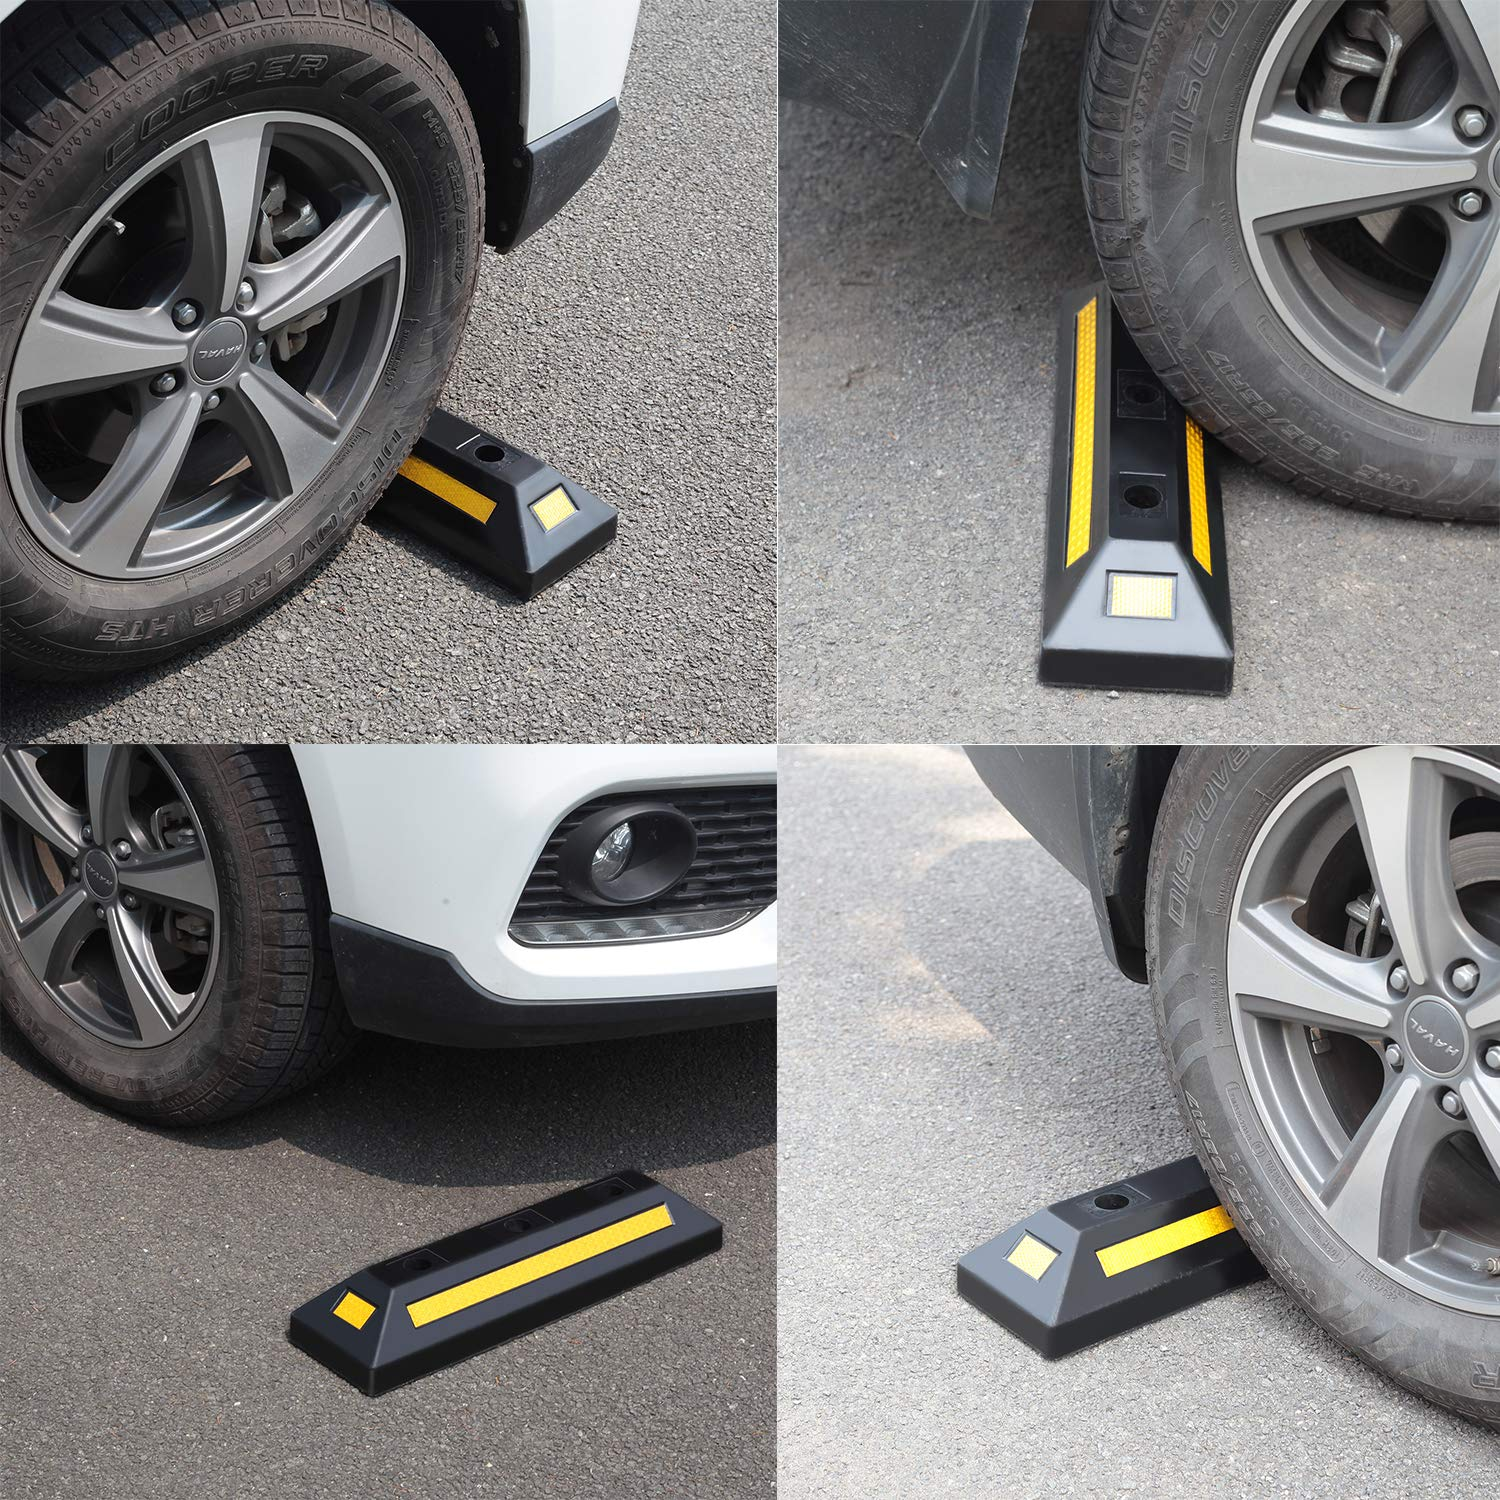 2 Pack Heavy Duty Rubber Parking Blocks Wheel Stop for Car Garage Parks Wheel Stop Stoppers Professional Grade Parking Rubber Block Curb w/Yellow Refective Stripes for Truck RV, Trailer 21.25''(L) by Reliancer (Image #8)